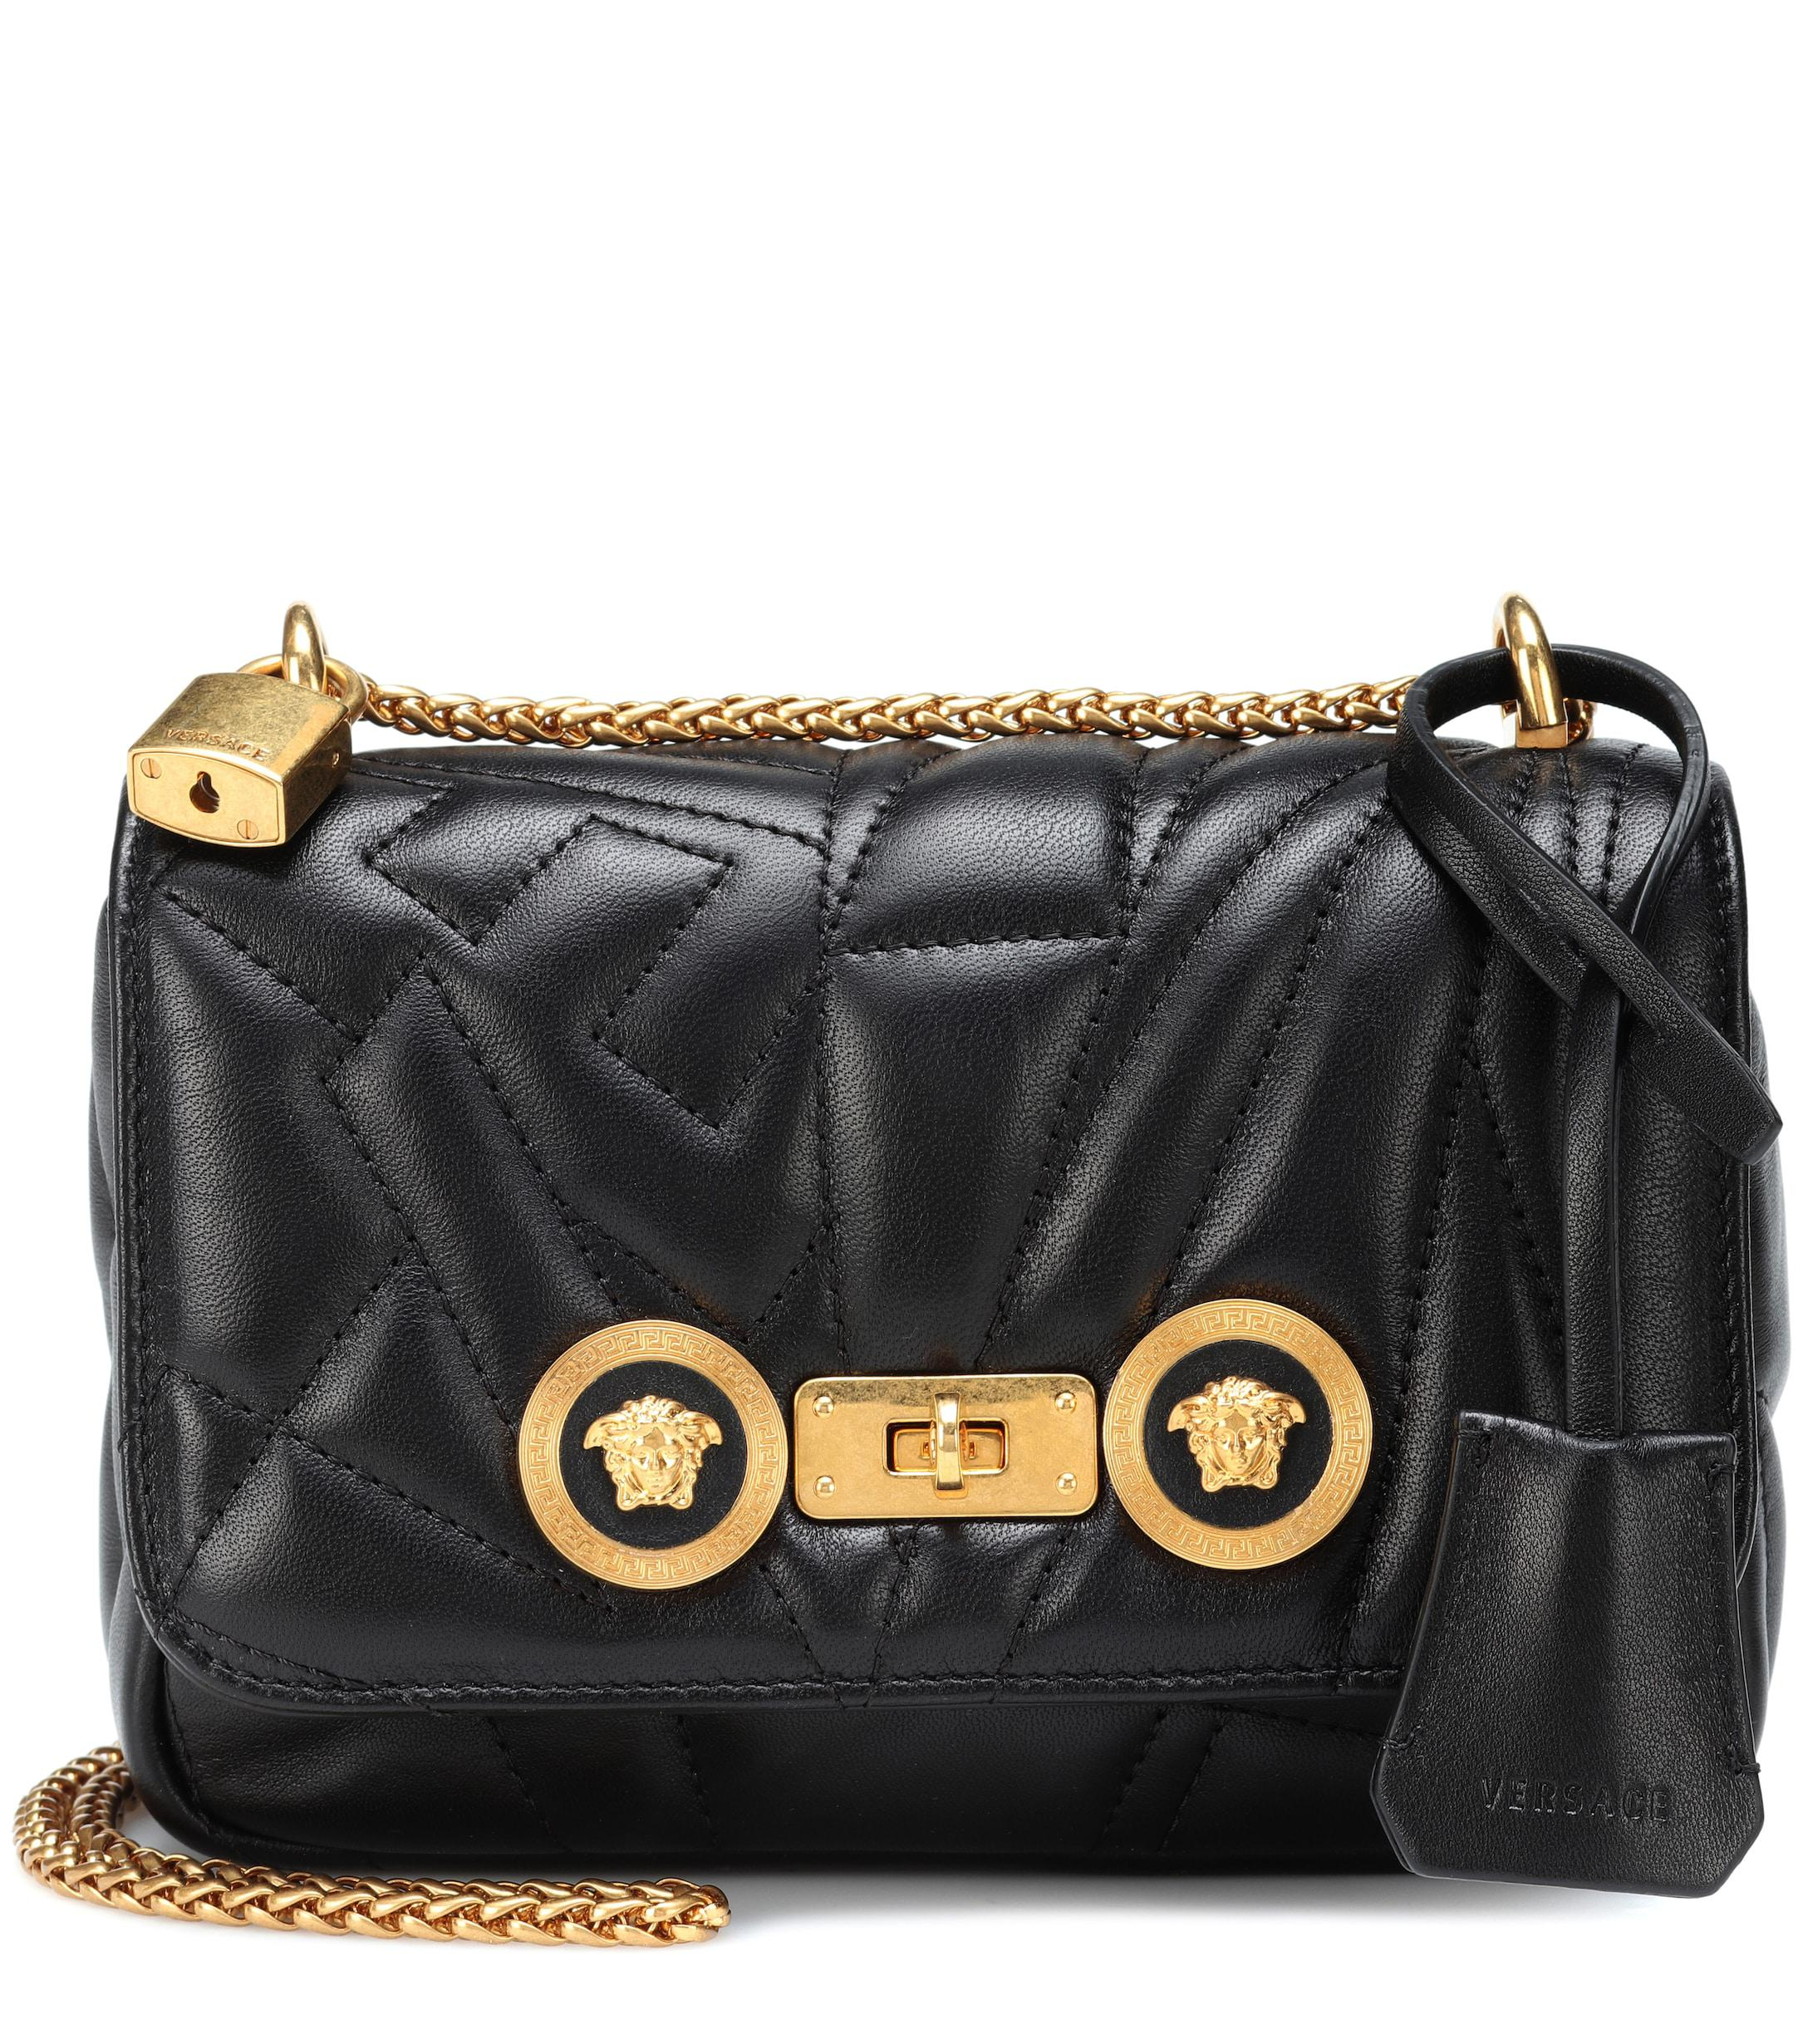 e875d3d558 Versace Icon Quilted Leather Shoulder Bag in Black - Lyst